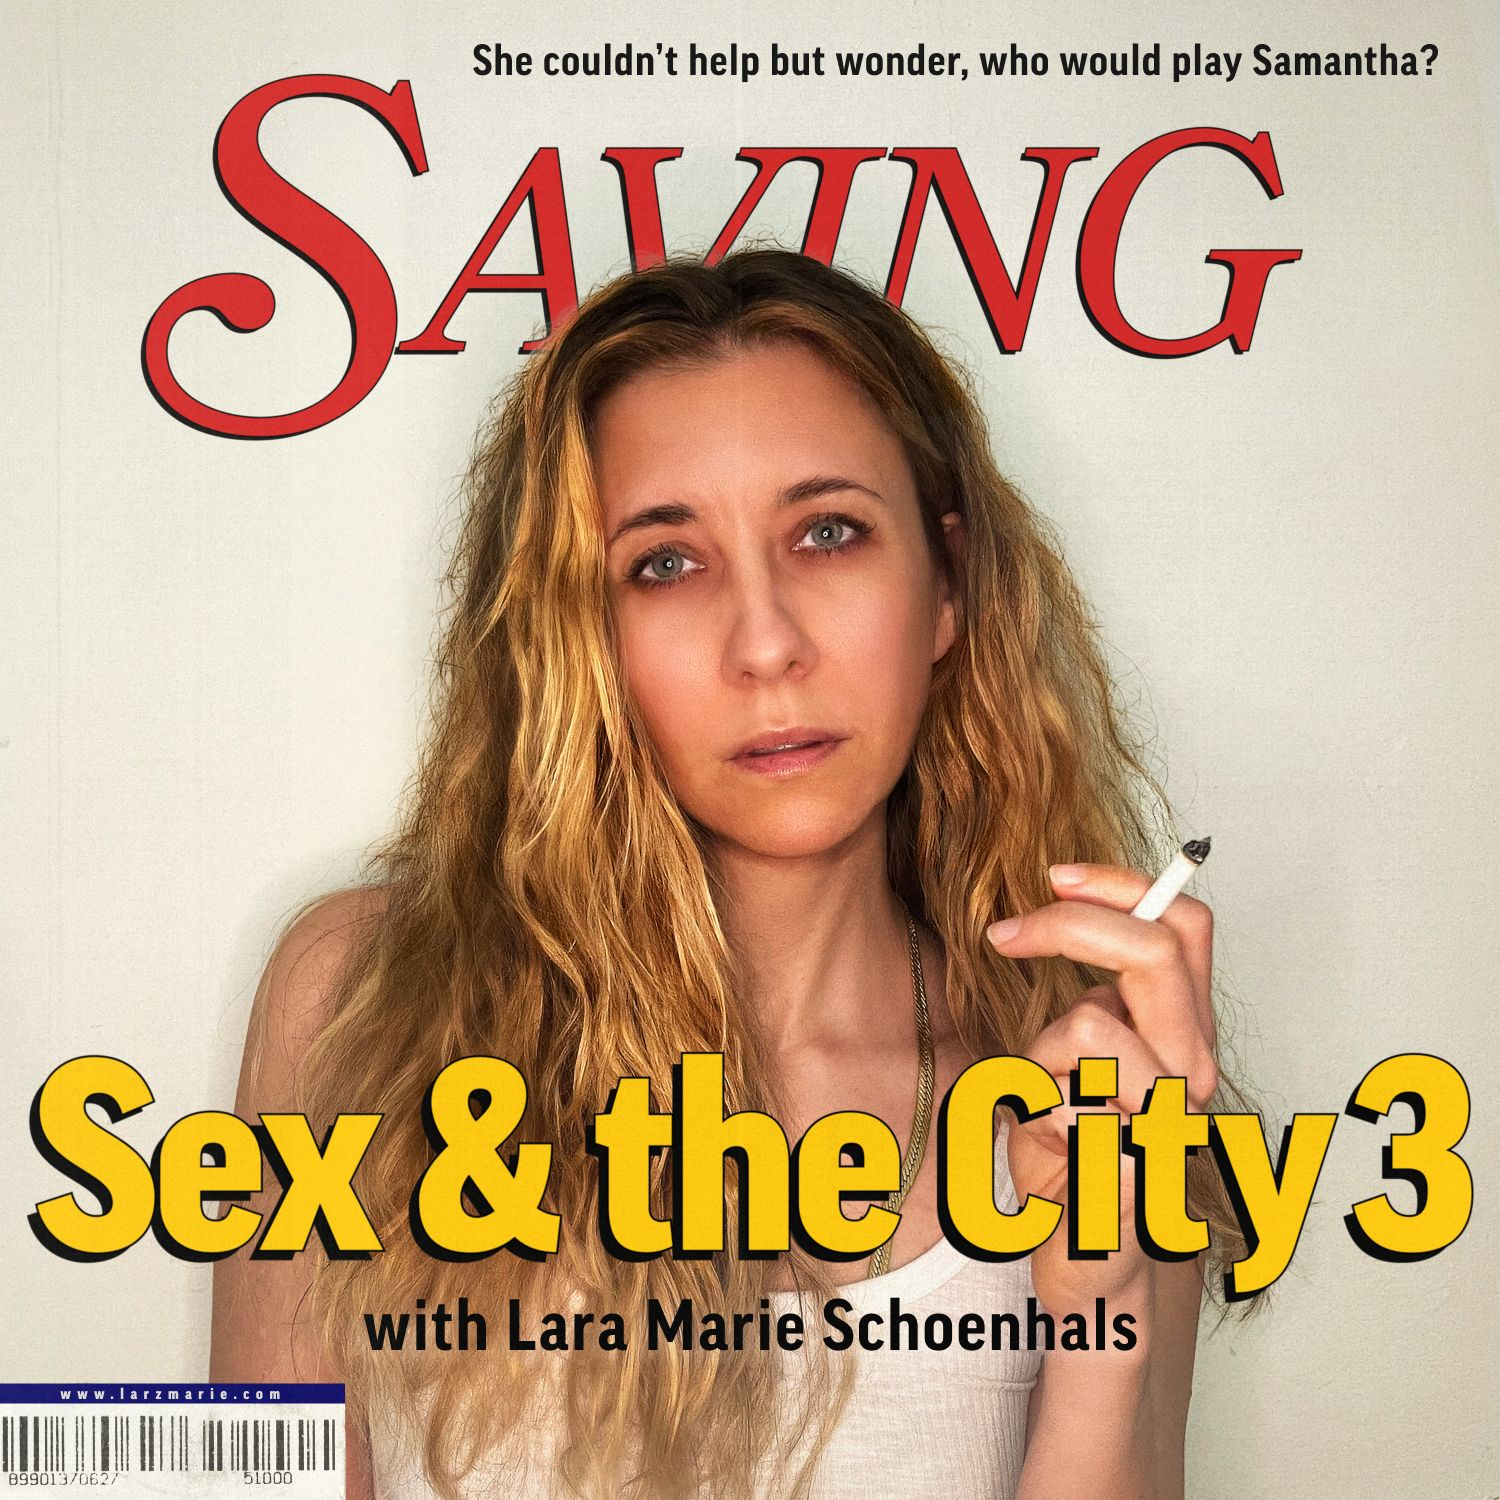 Saving Sex and the City 3 podcast show image